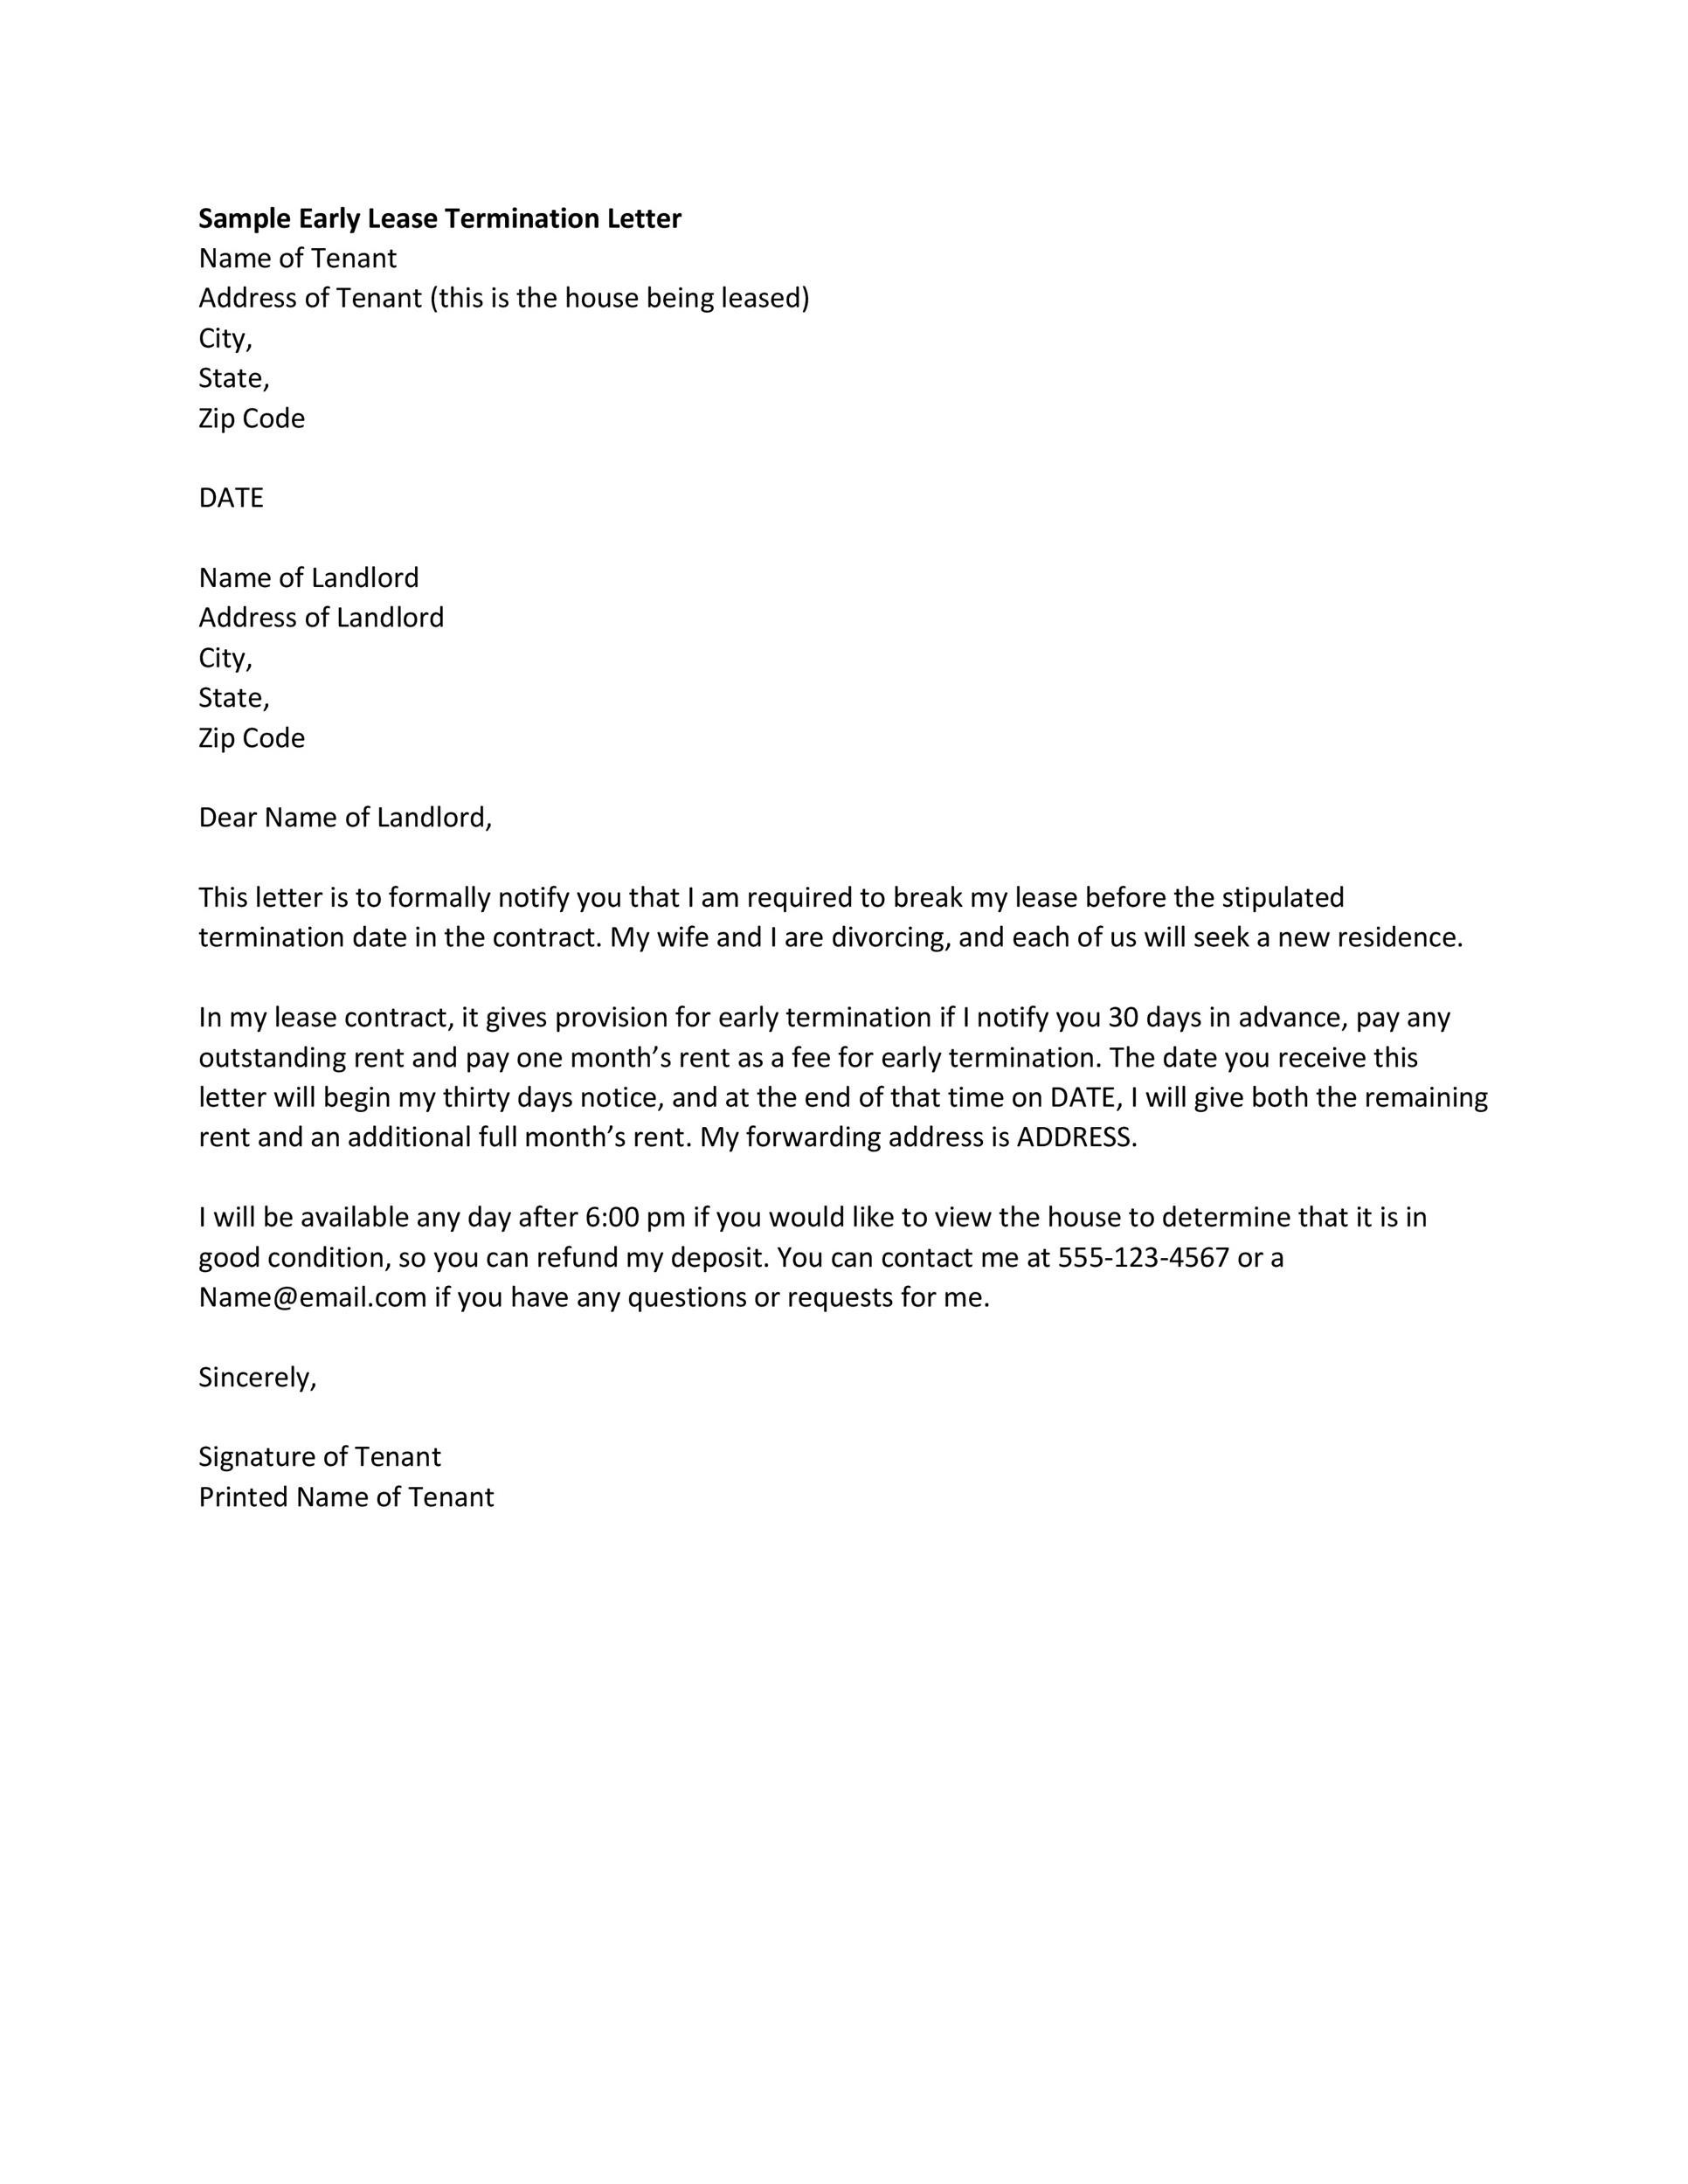 35 Perfect Termination Letter Samples Lease, Employee, Contract - termination notice template